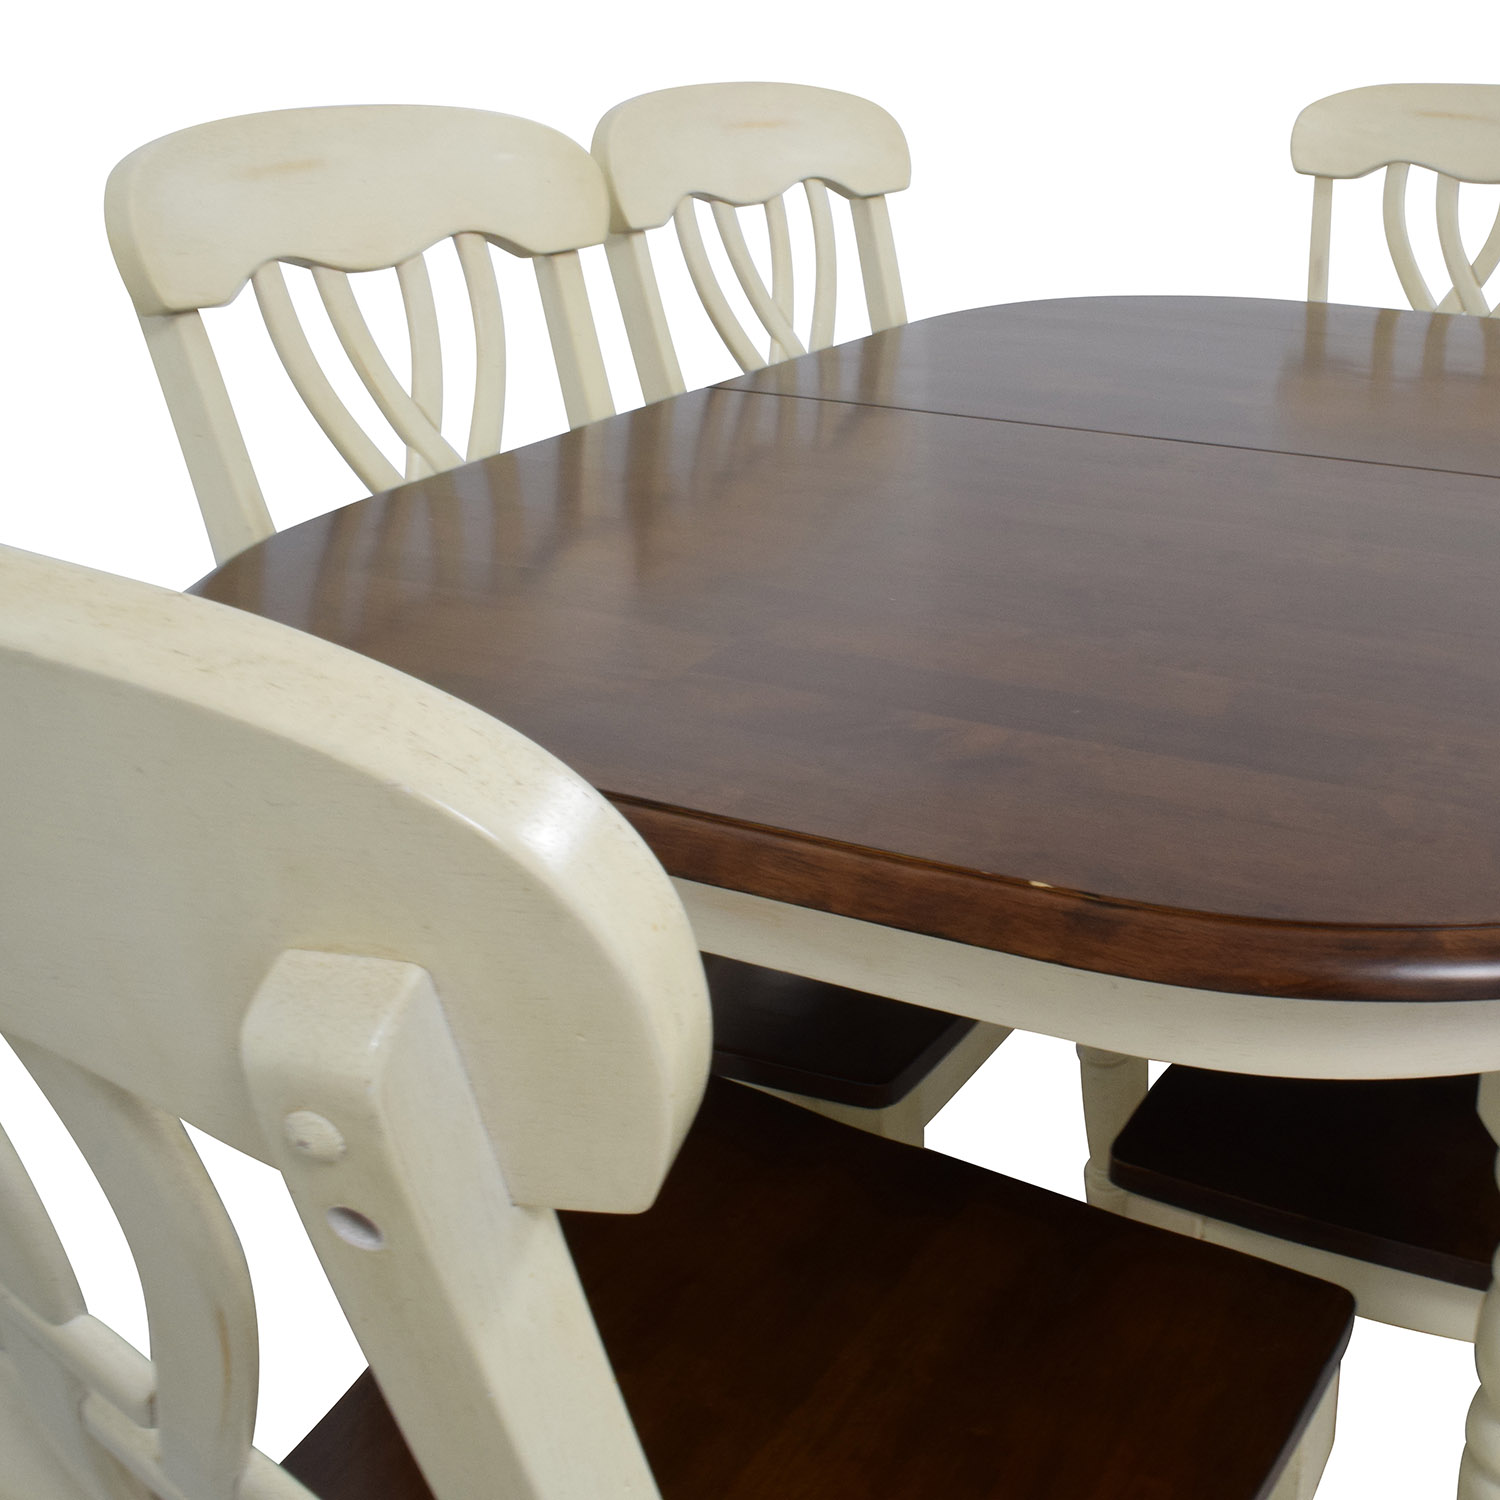 buy Extendable Wood Dining Table with Chairs Dining Sets